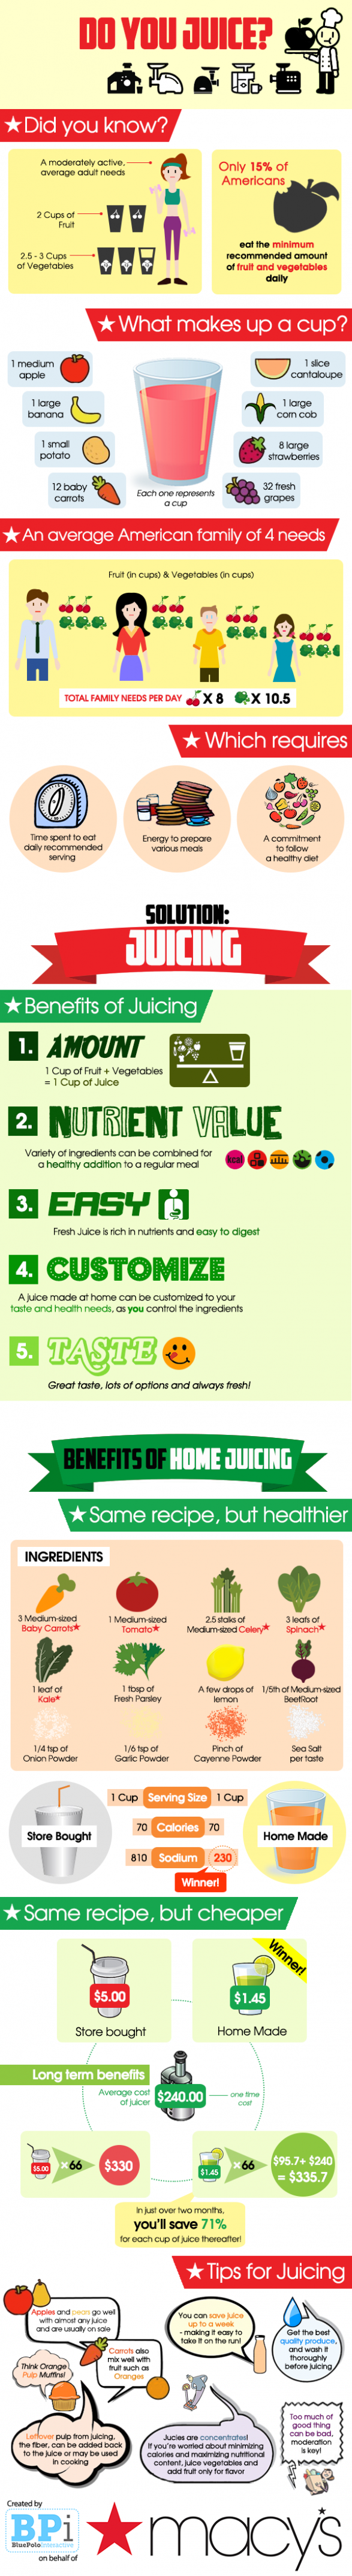 the-benefits-of-home-juicing_526e91e8636ad_w587.png